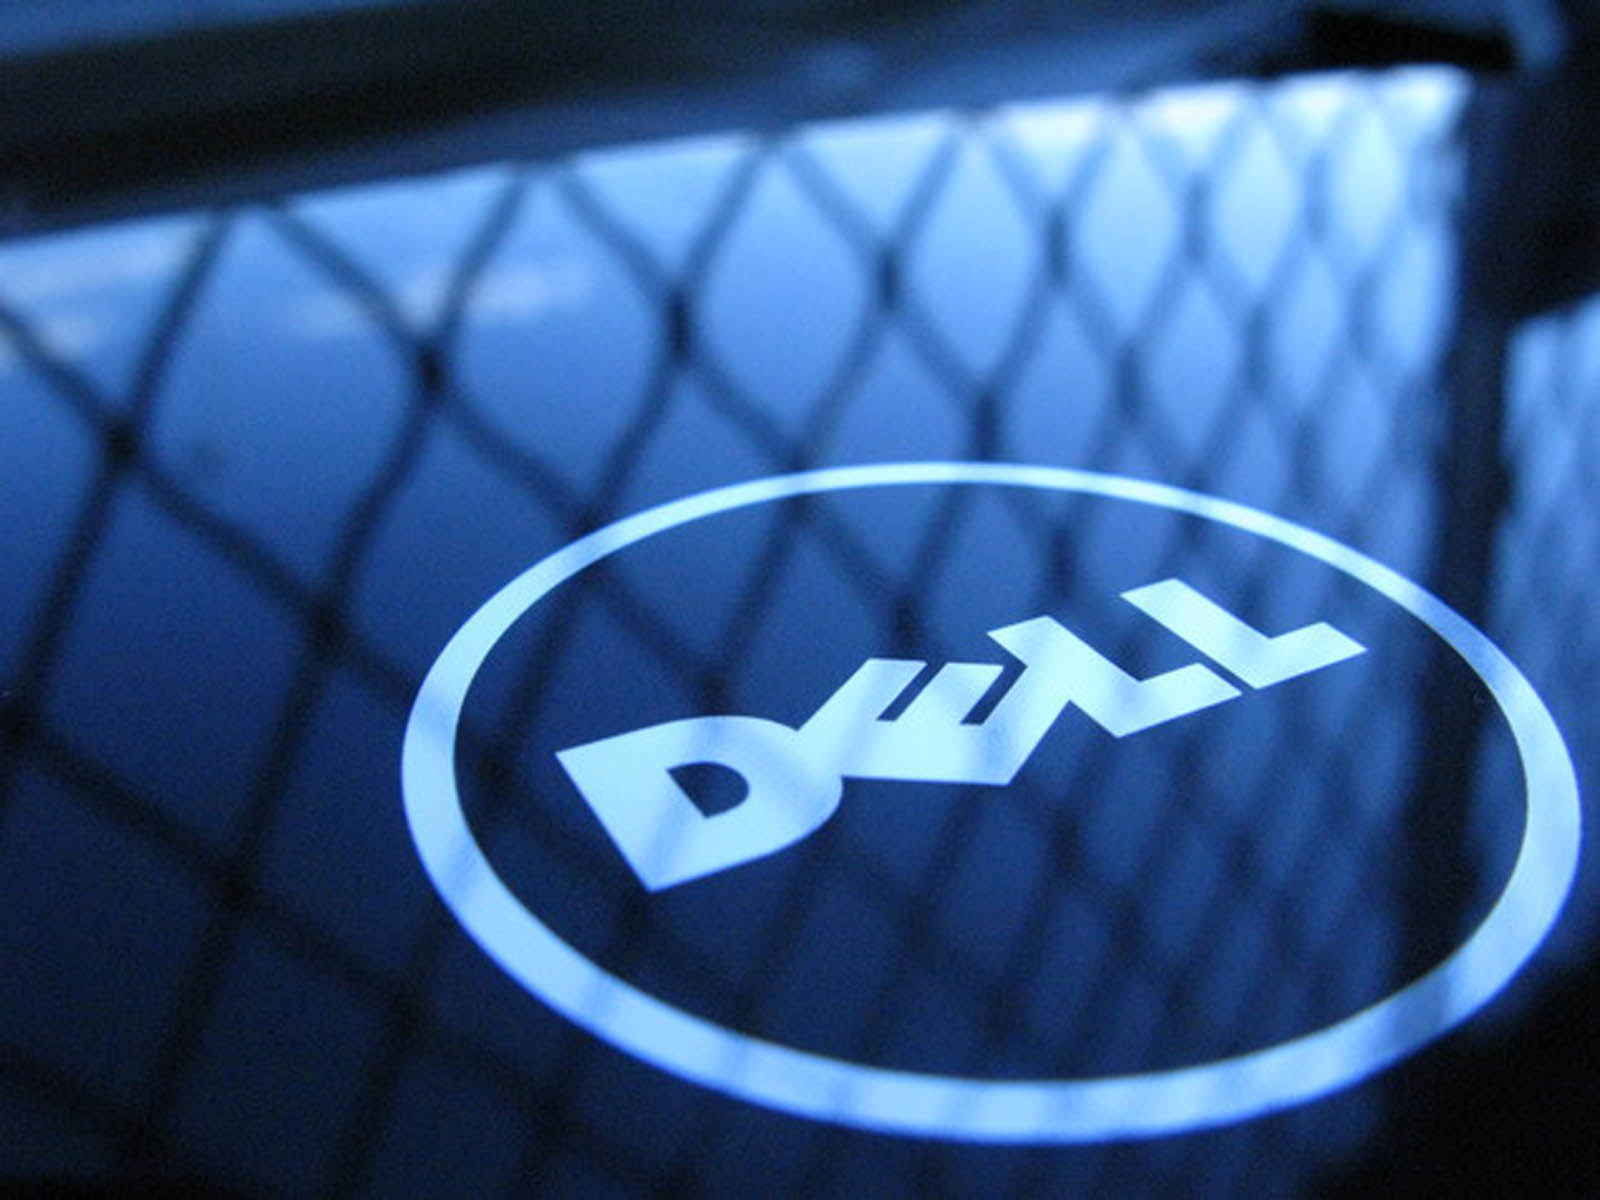 Collection of Dell Wallpapers on HDWallpapers